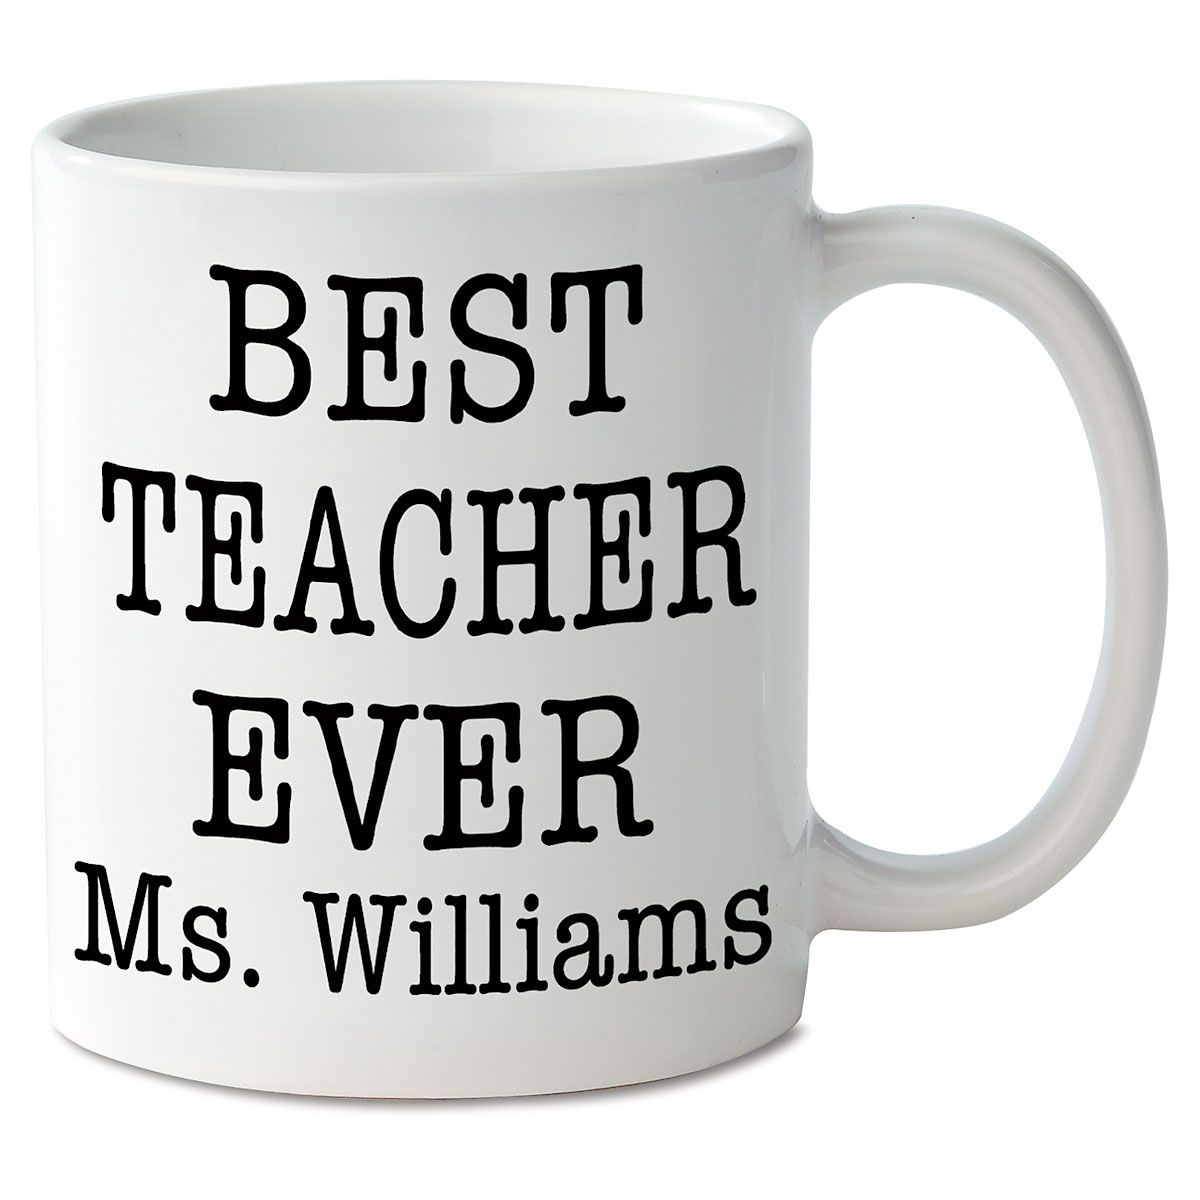 Best Teacher Ever Personalized Mug